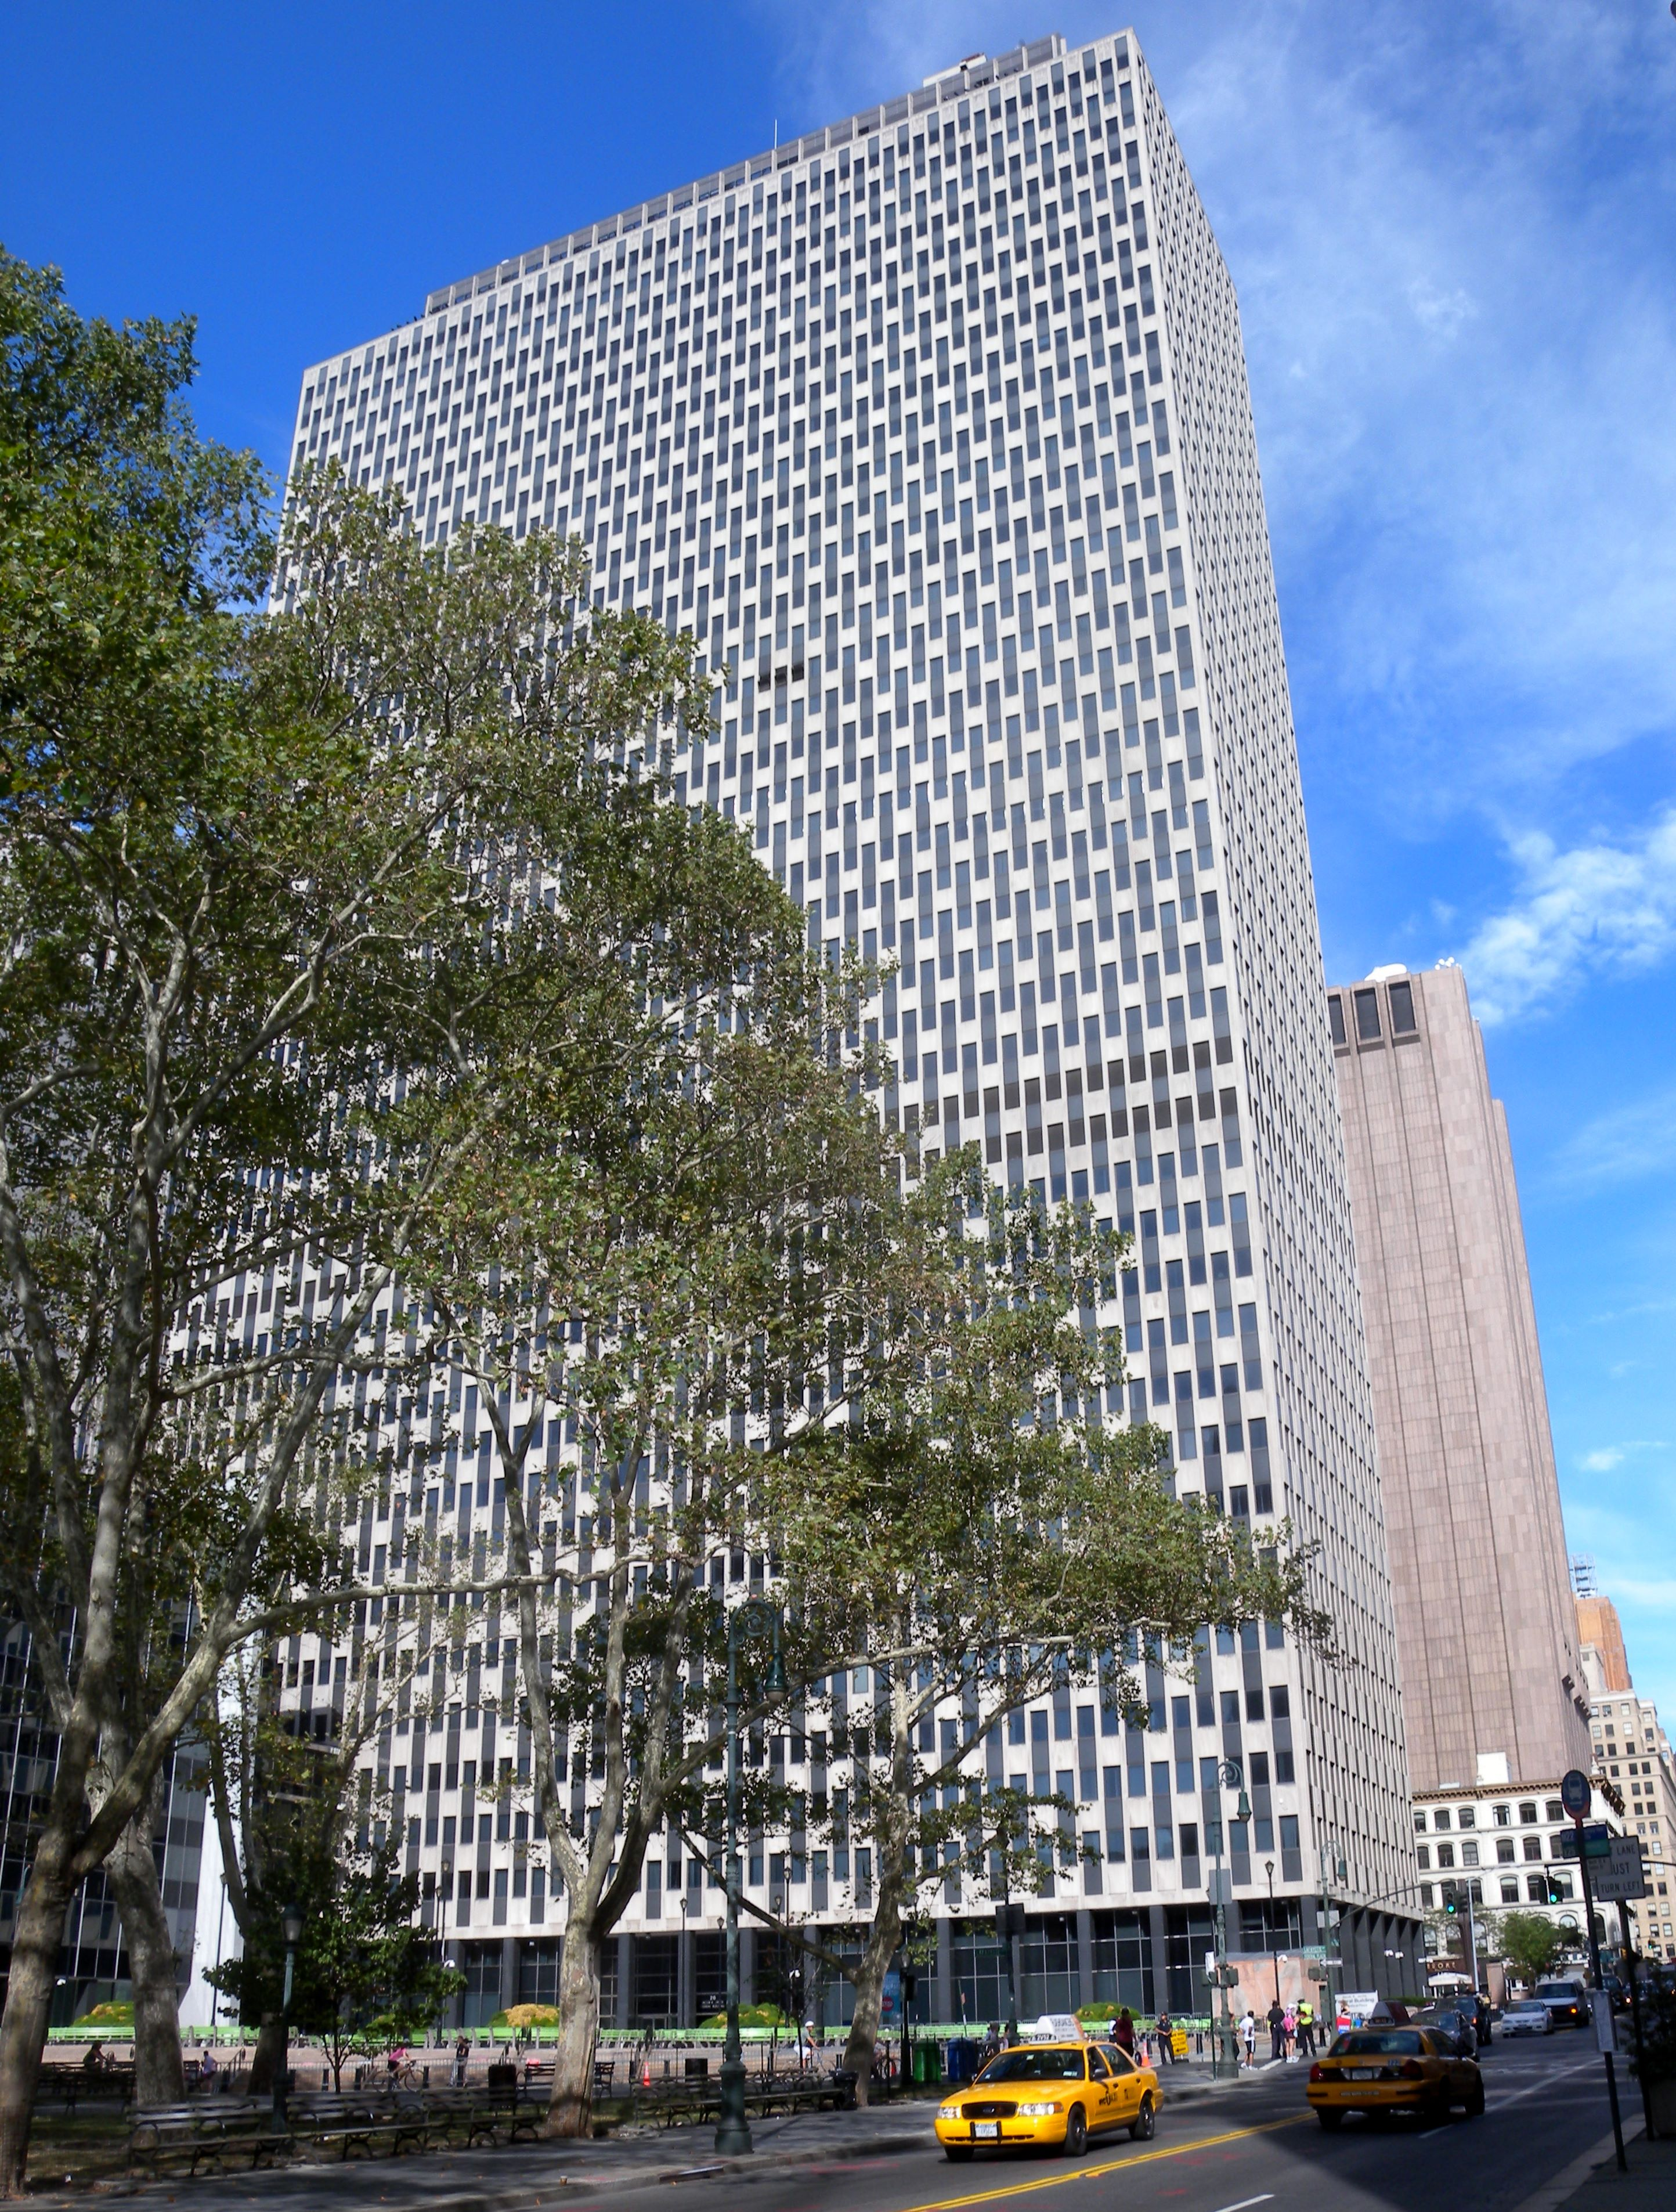 Federal Building Services : Jacob k javits federal building new york roadtrippers